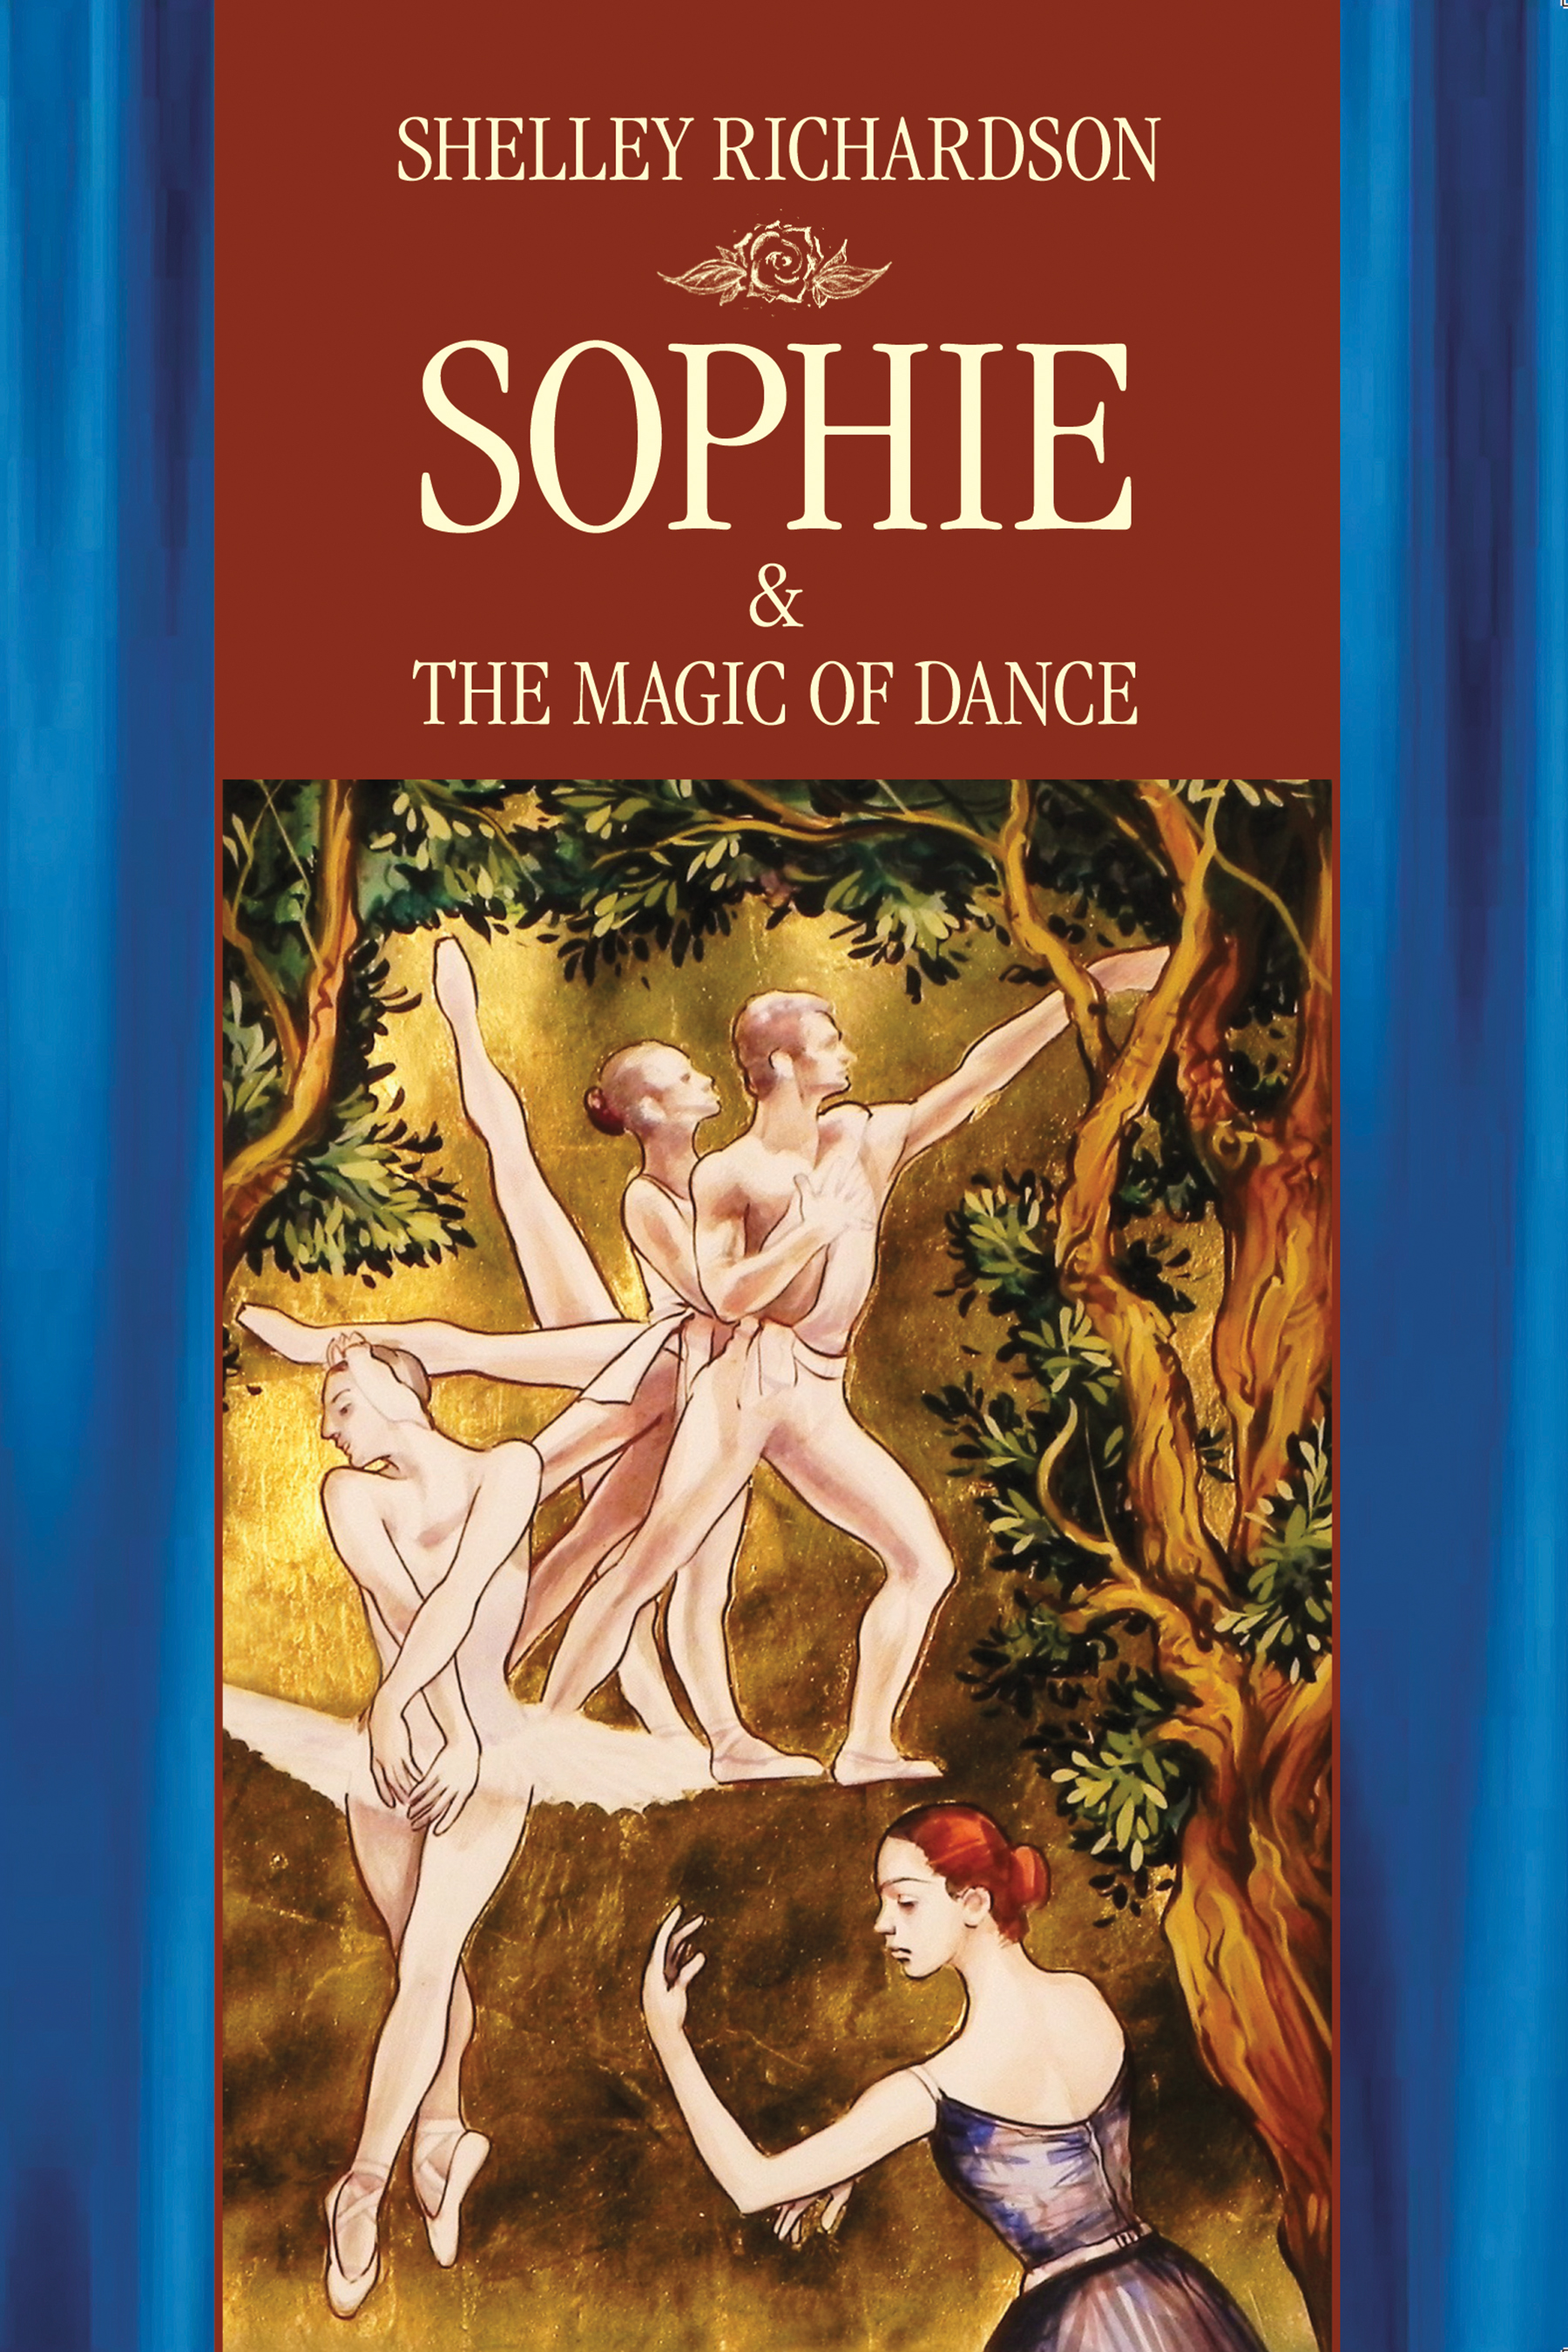 Sophie & The Magic of Dance by Shelley Richardson